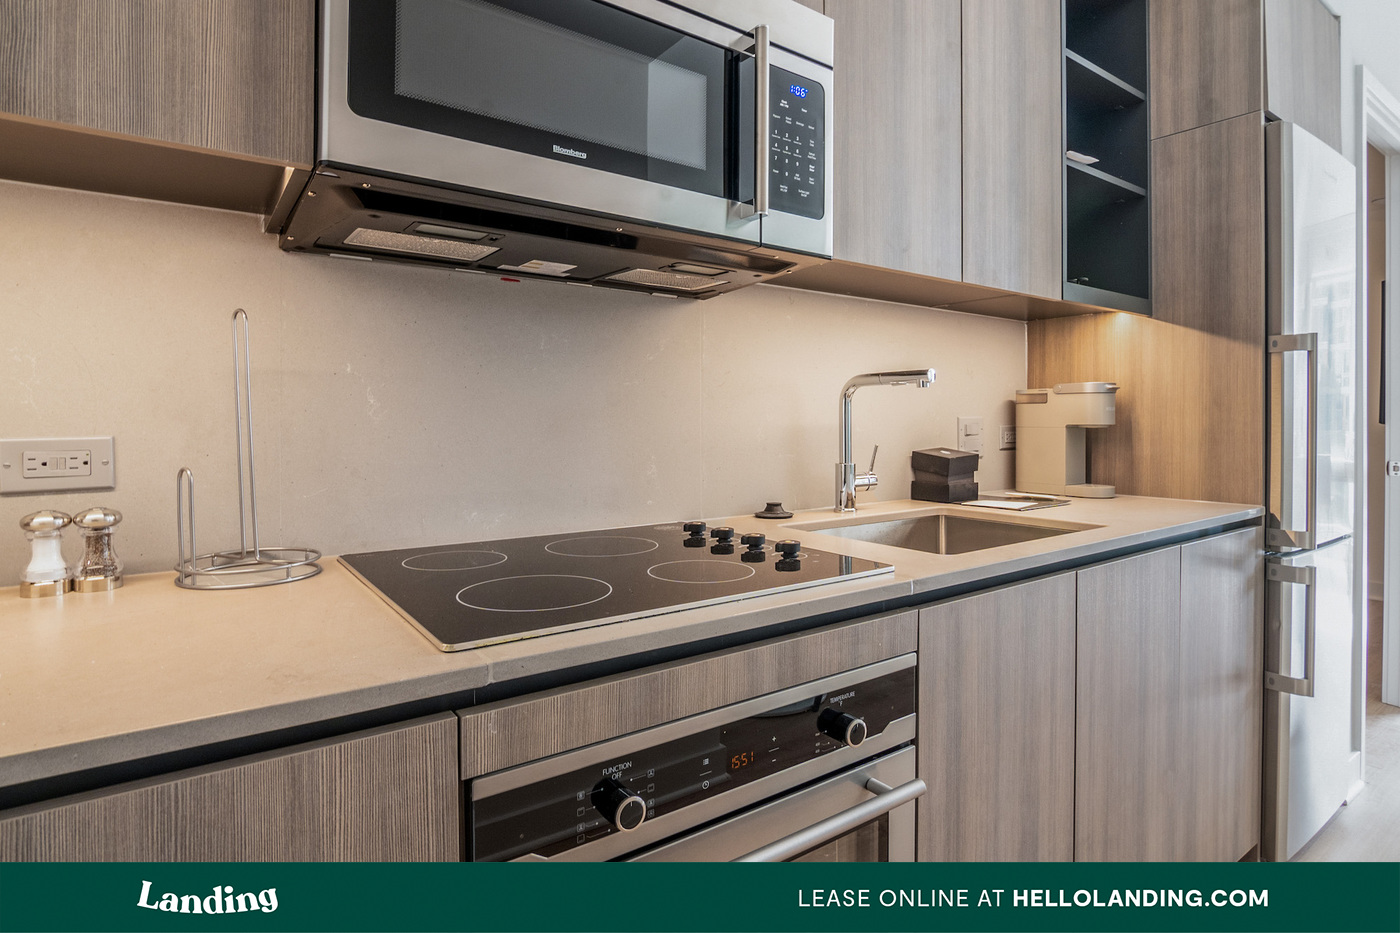 Landing Furnished Apartment The Residences of Westover Hills Apartments photo